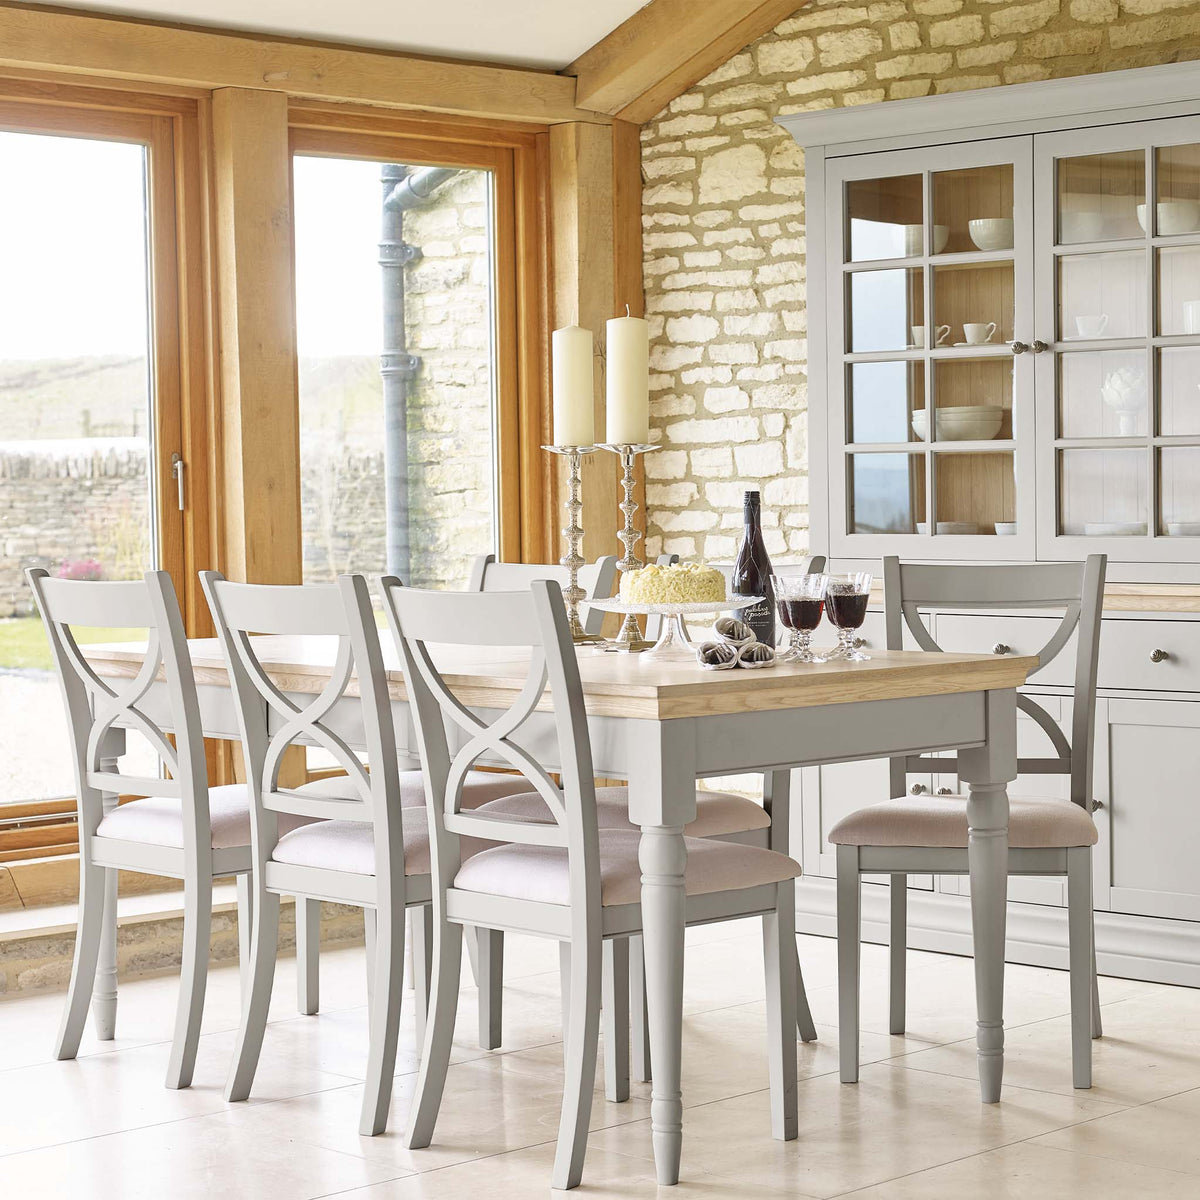 Lifestyle image of the Melrose Grey Dining Chair from Roseland Furniture